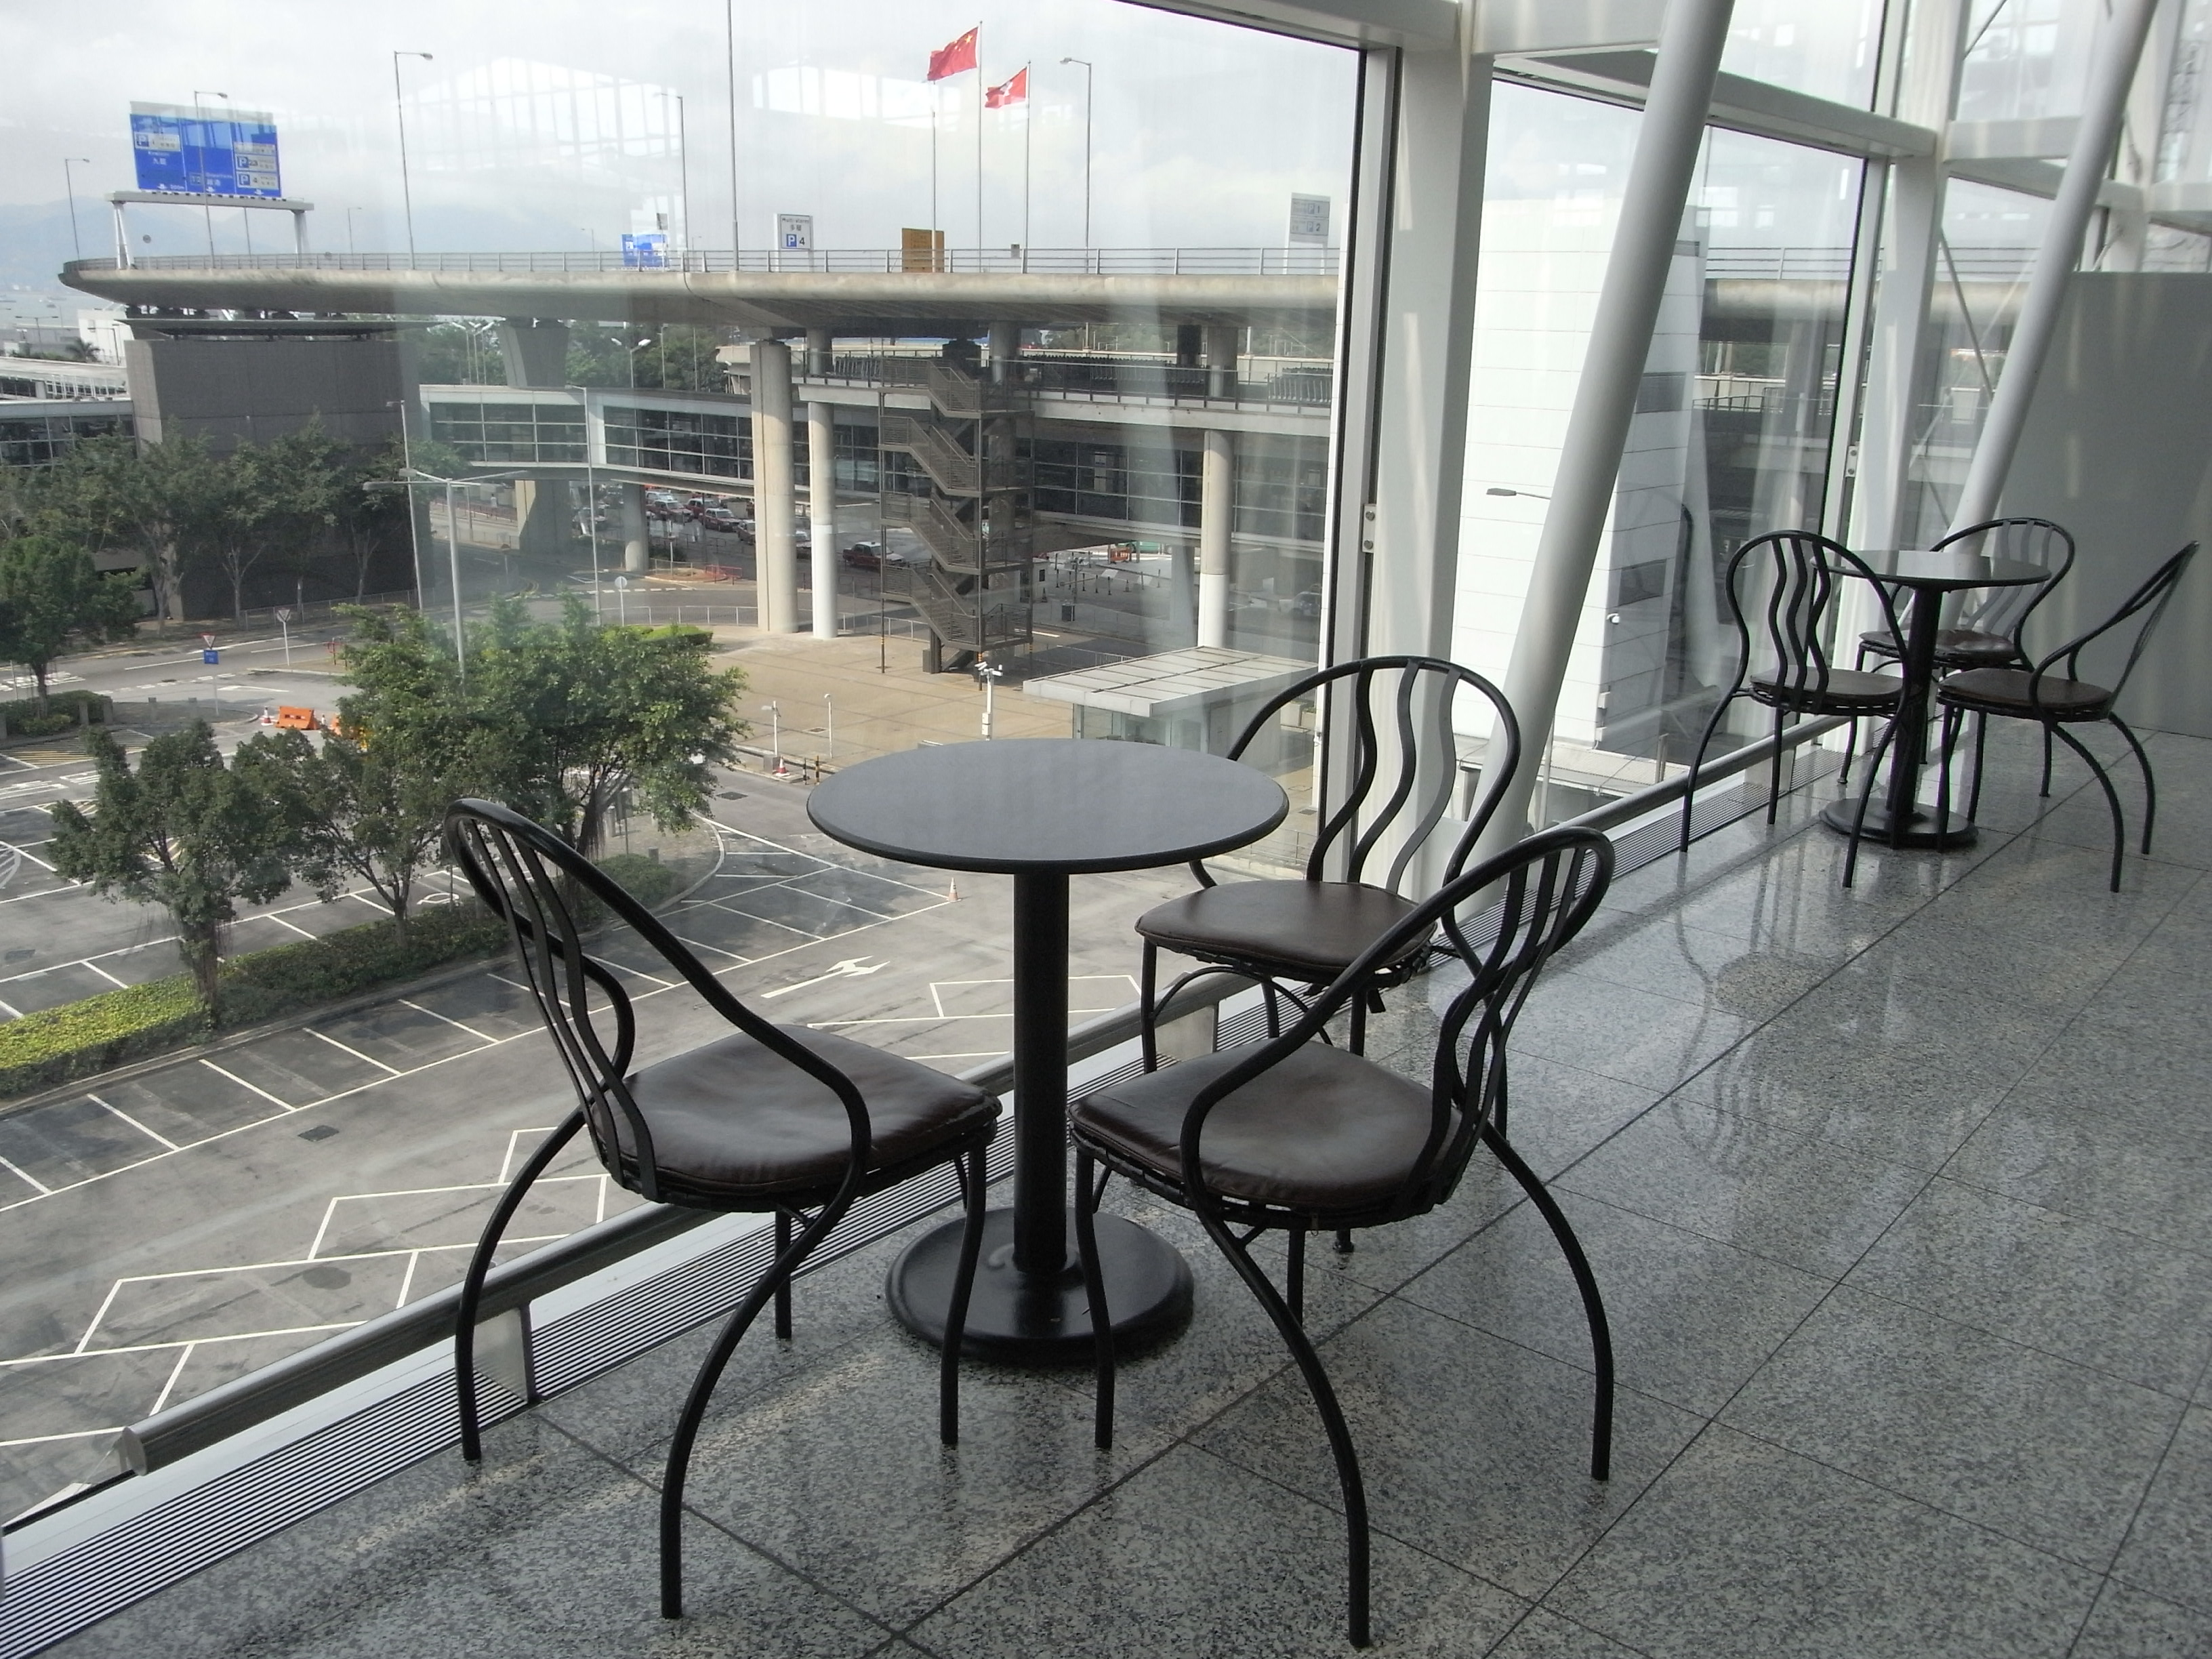 File hk airport terminal 1 pacific coffee restaurant table for Table table restaurants locations